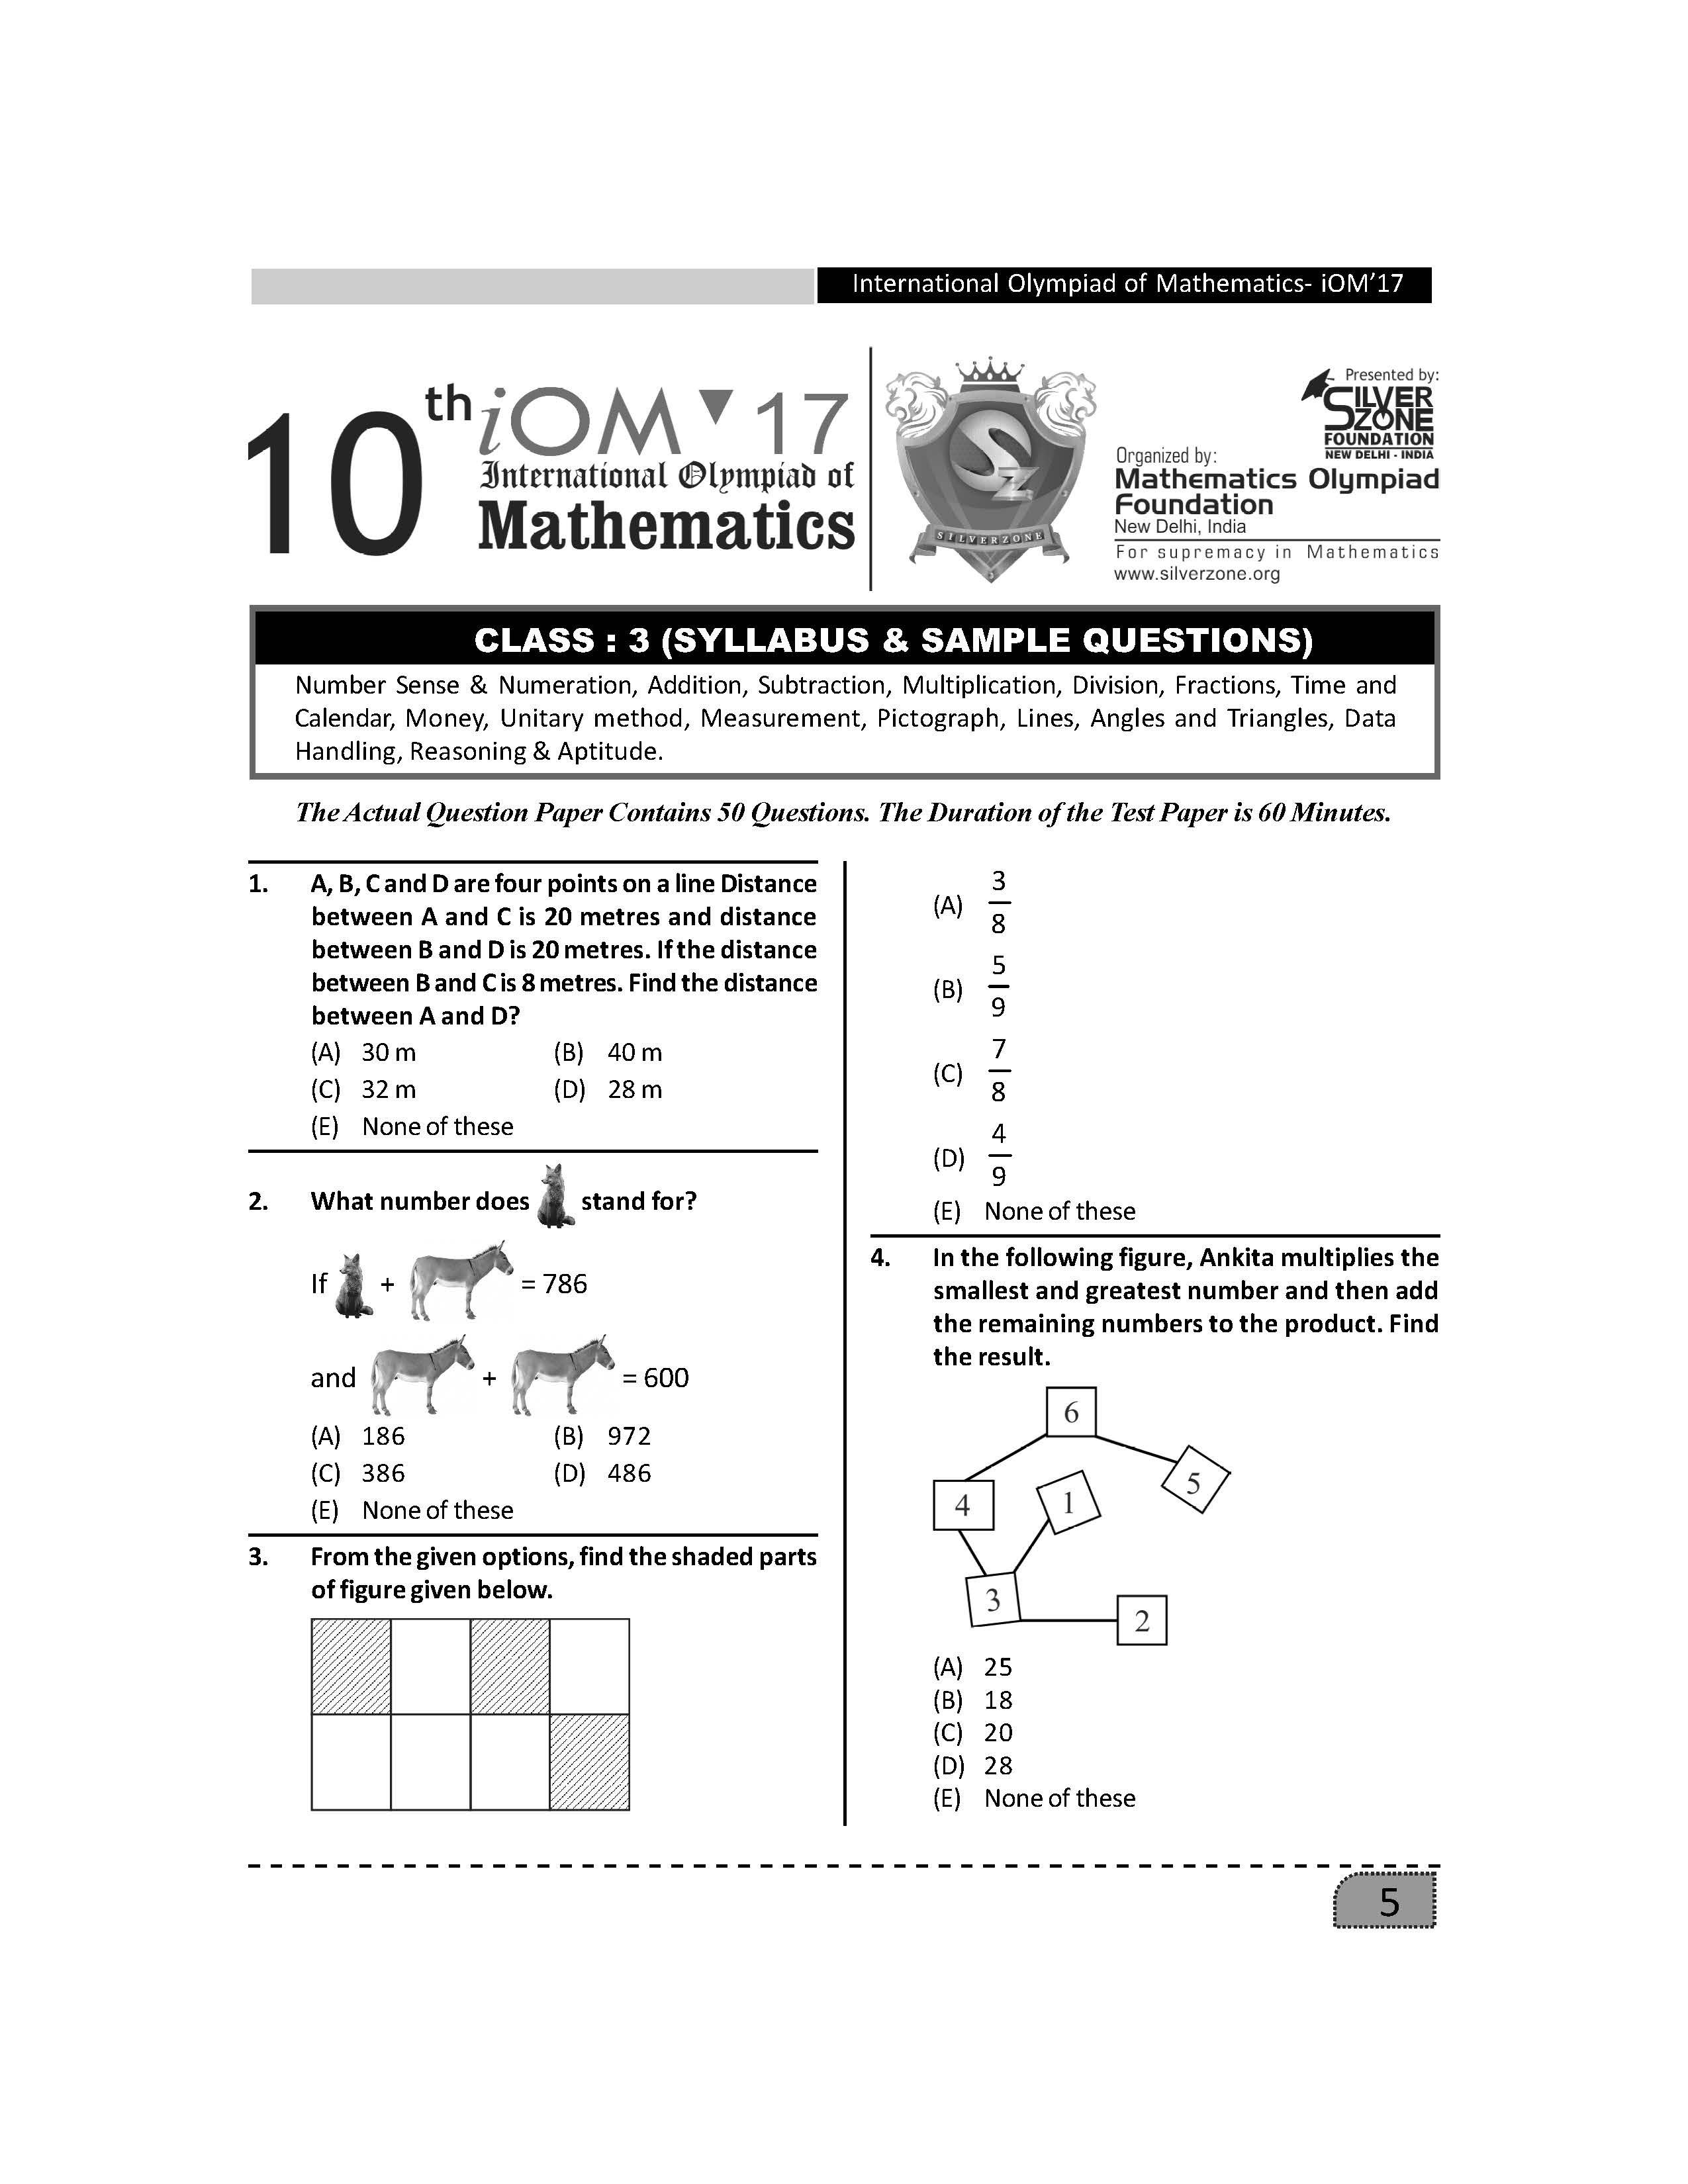 Class 3 Iom Sample Paper And Syllabus As Issued By